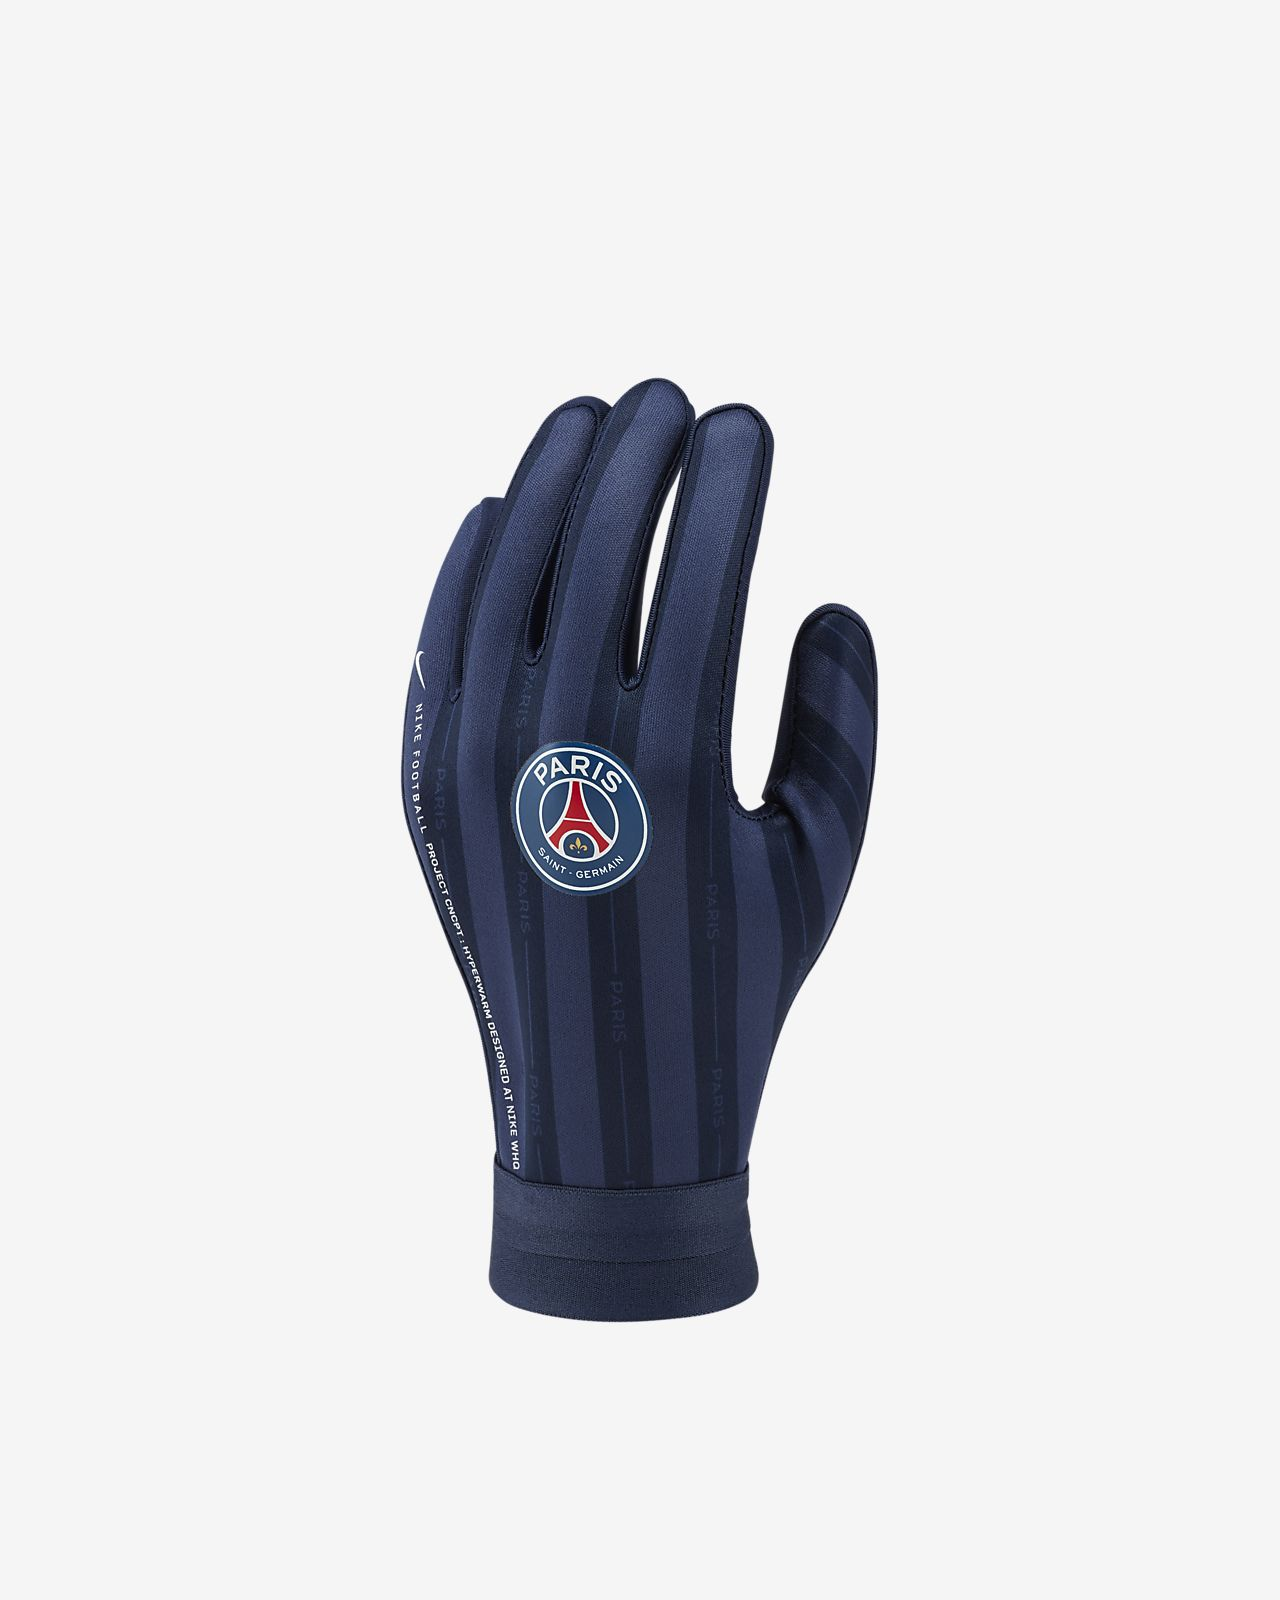 Gants de football Paris Saint-Germain HyperWarm Academy pour Enfant plus âgé